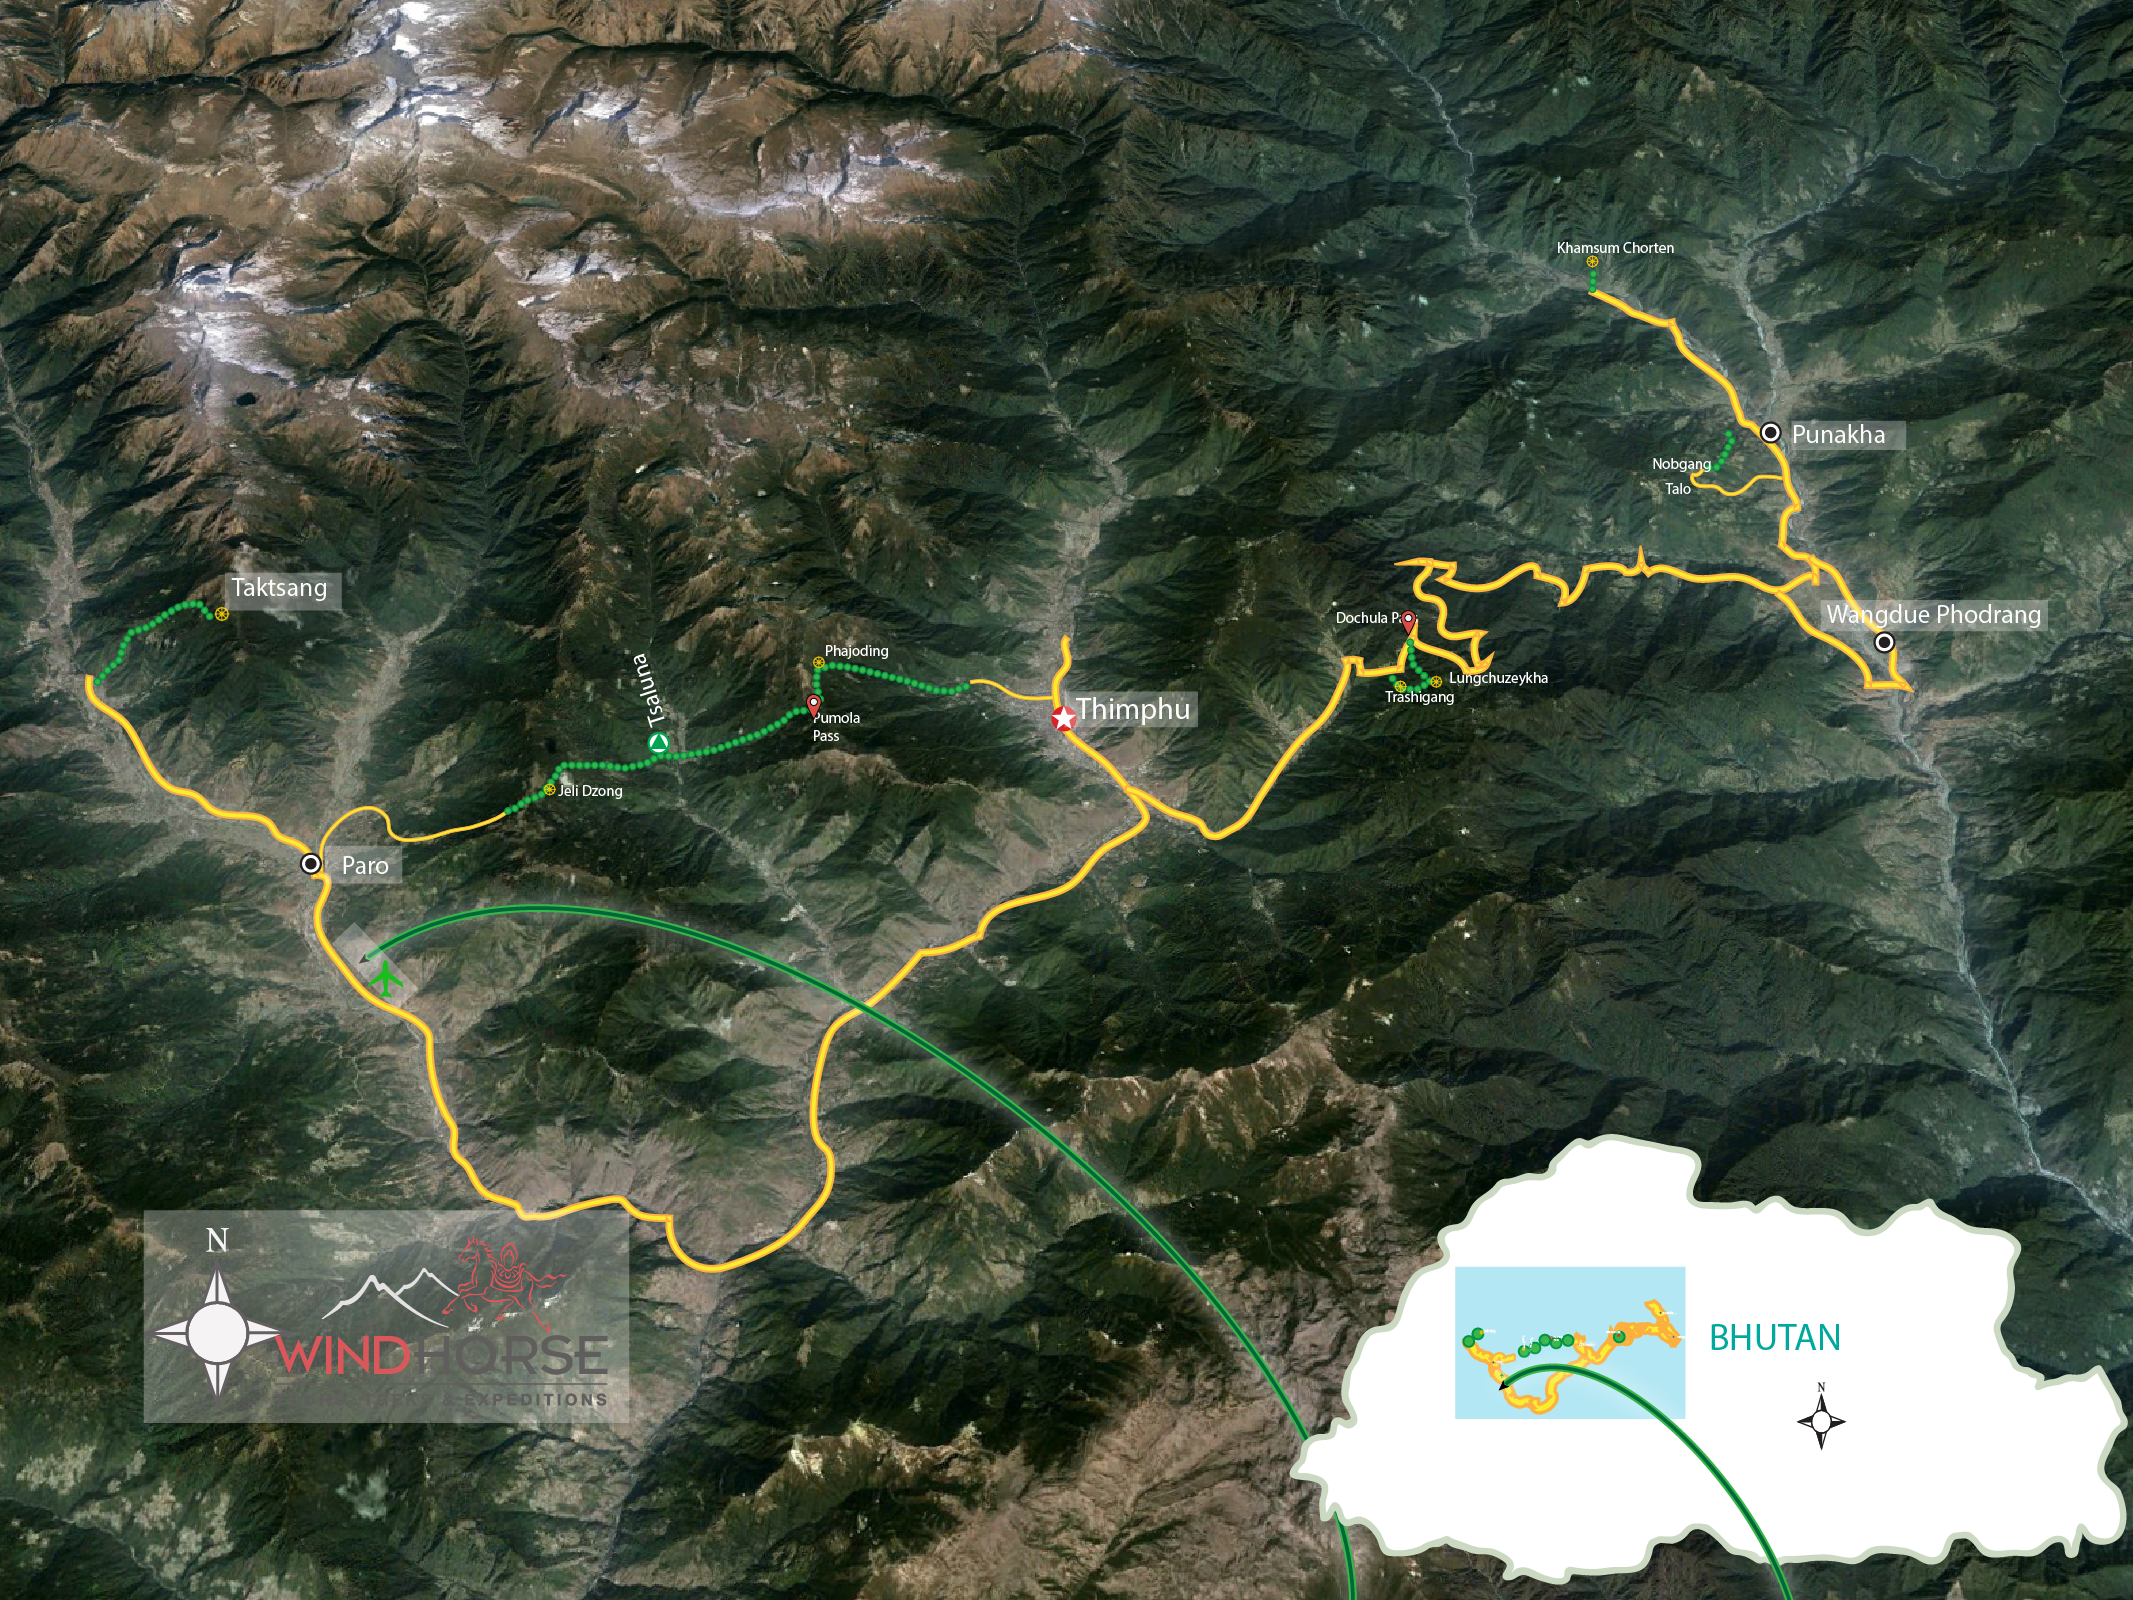 Bhutan Tour & Short trek Trip Map, Route Map